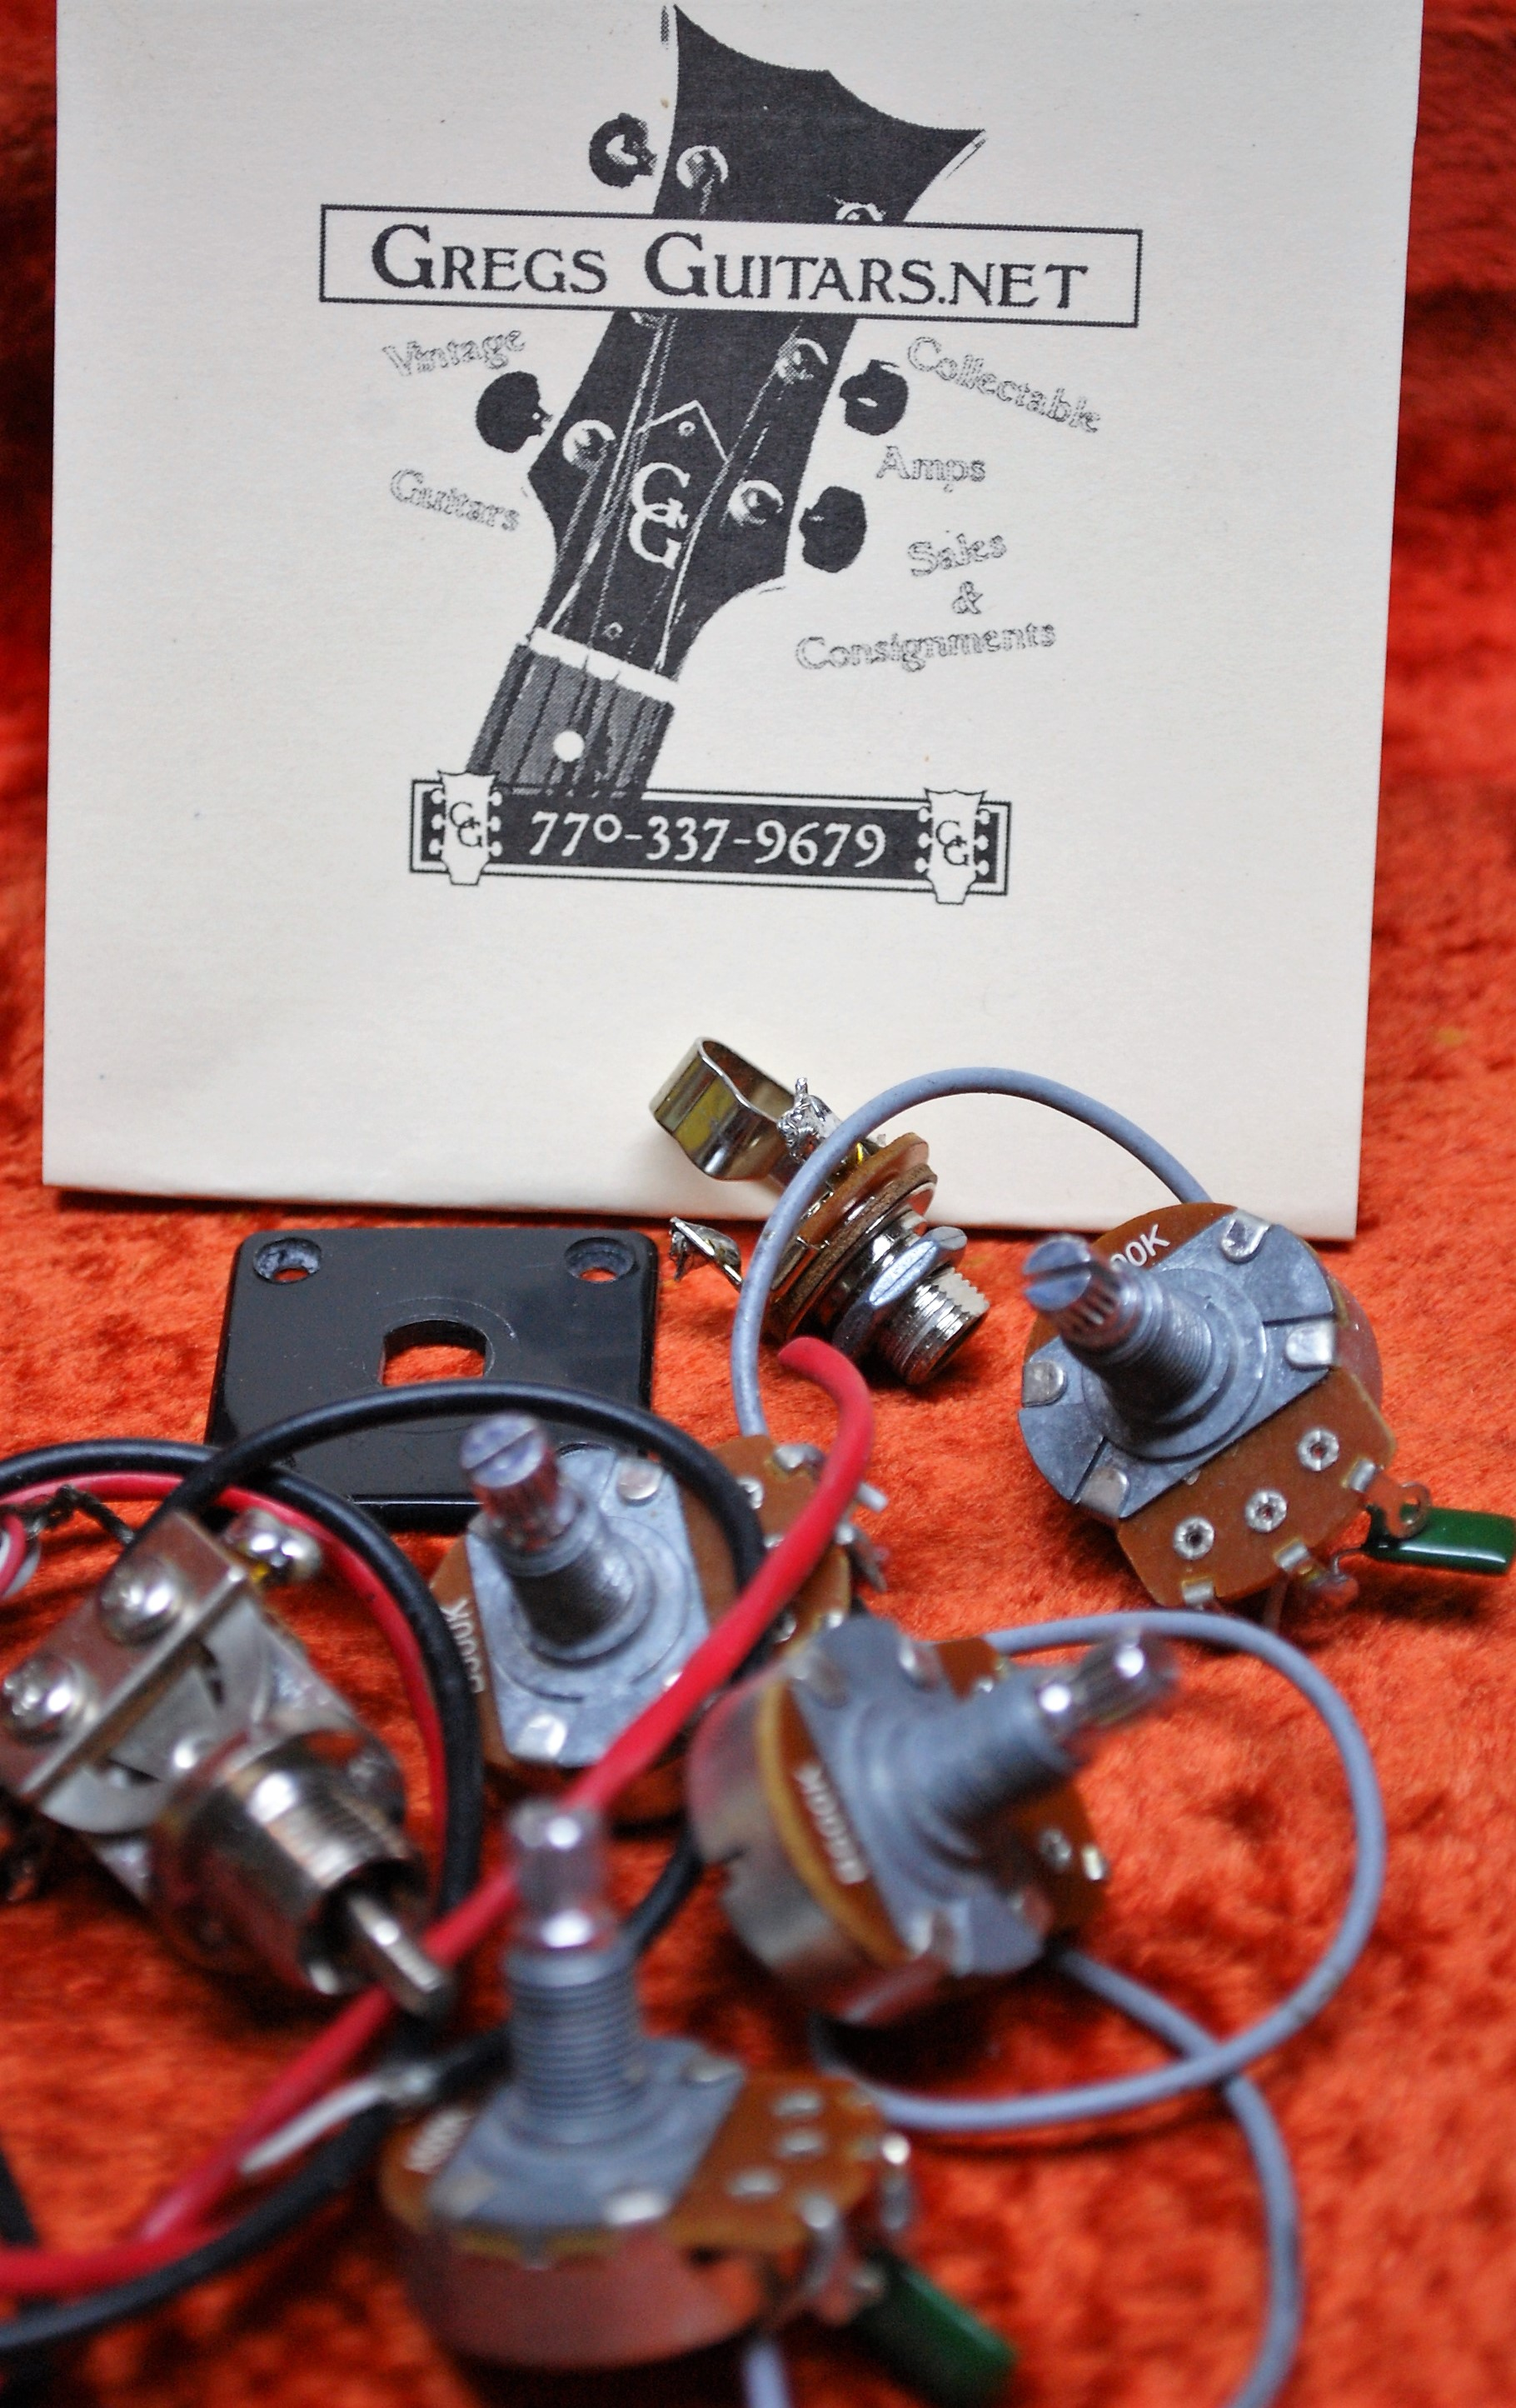 Epiphone Wiring Harness Library Gibson Explorer Guitar Parts Gregs Guitars